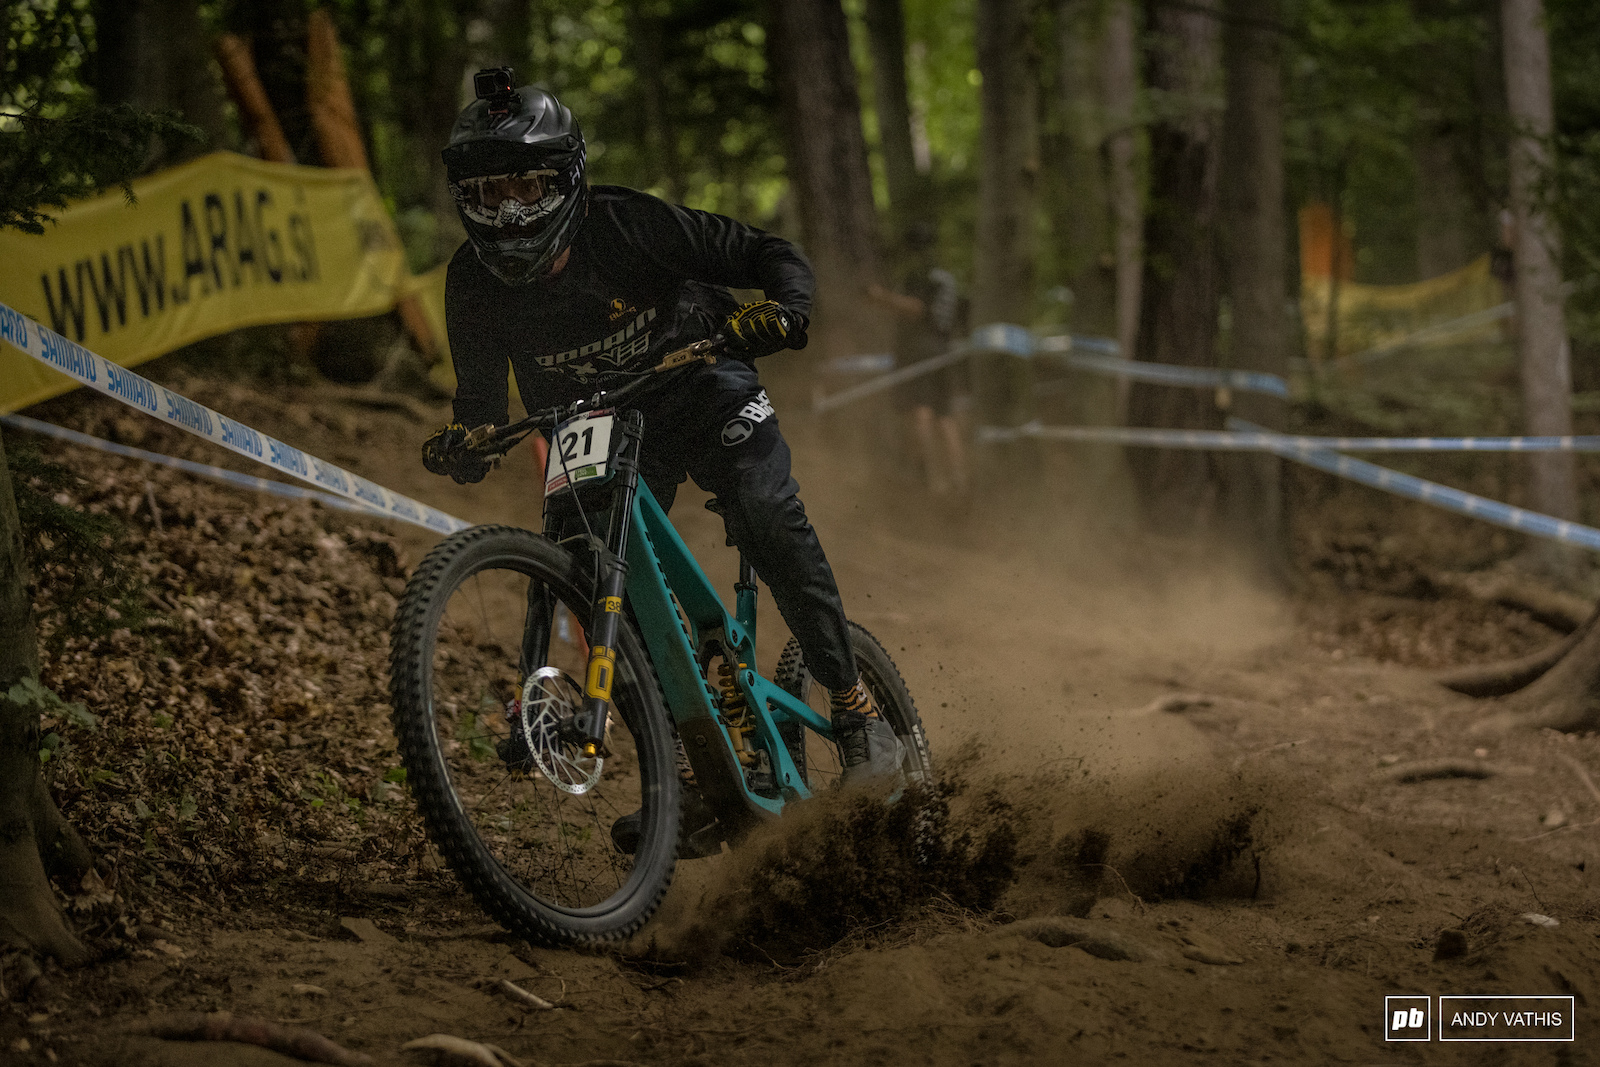 Phil Atwill fighting to stay above the loose dirt.